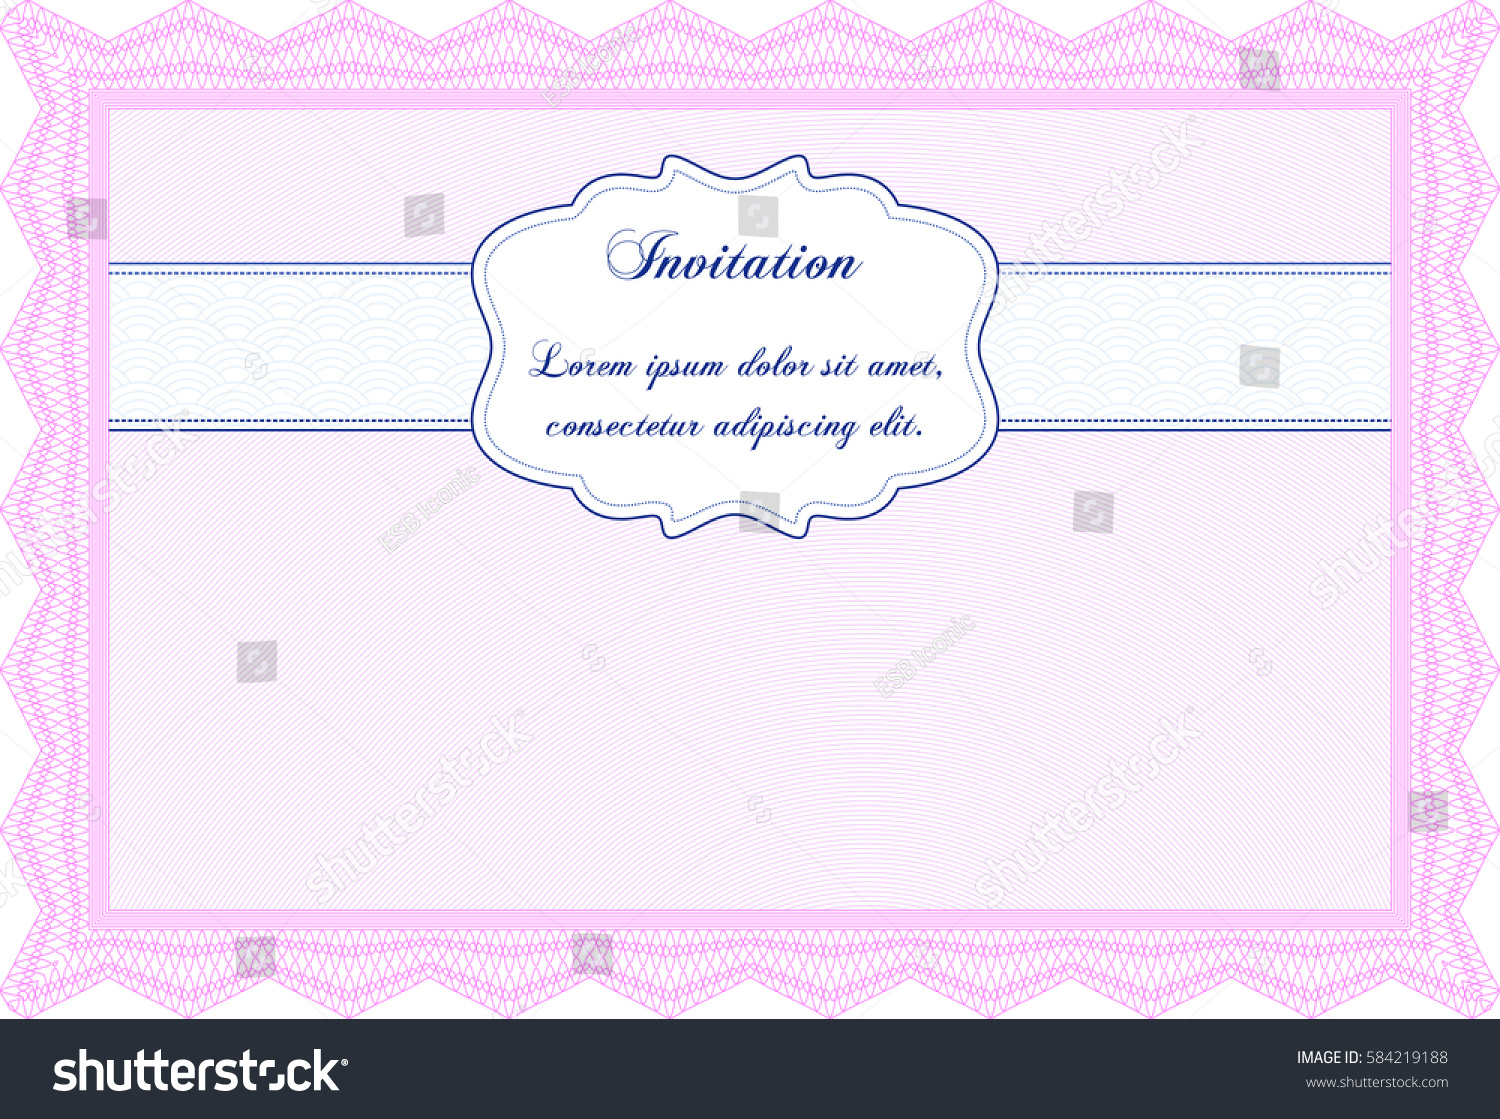 vector illustration formal invitation template icon stock vector vector illustration of formal invitation template icon in pink color